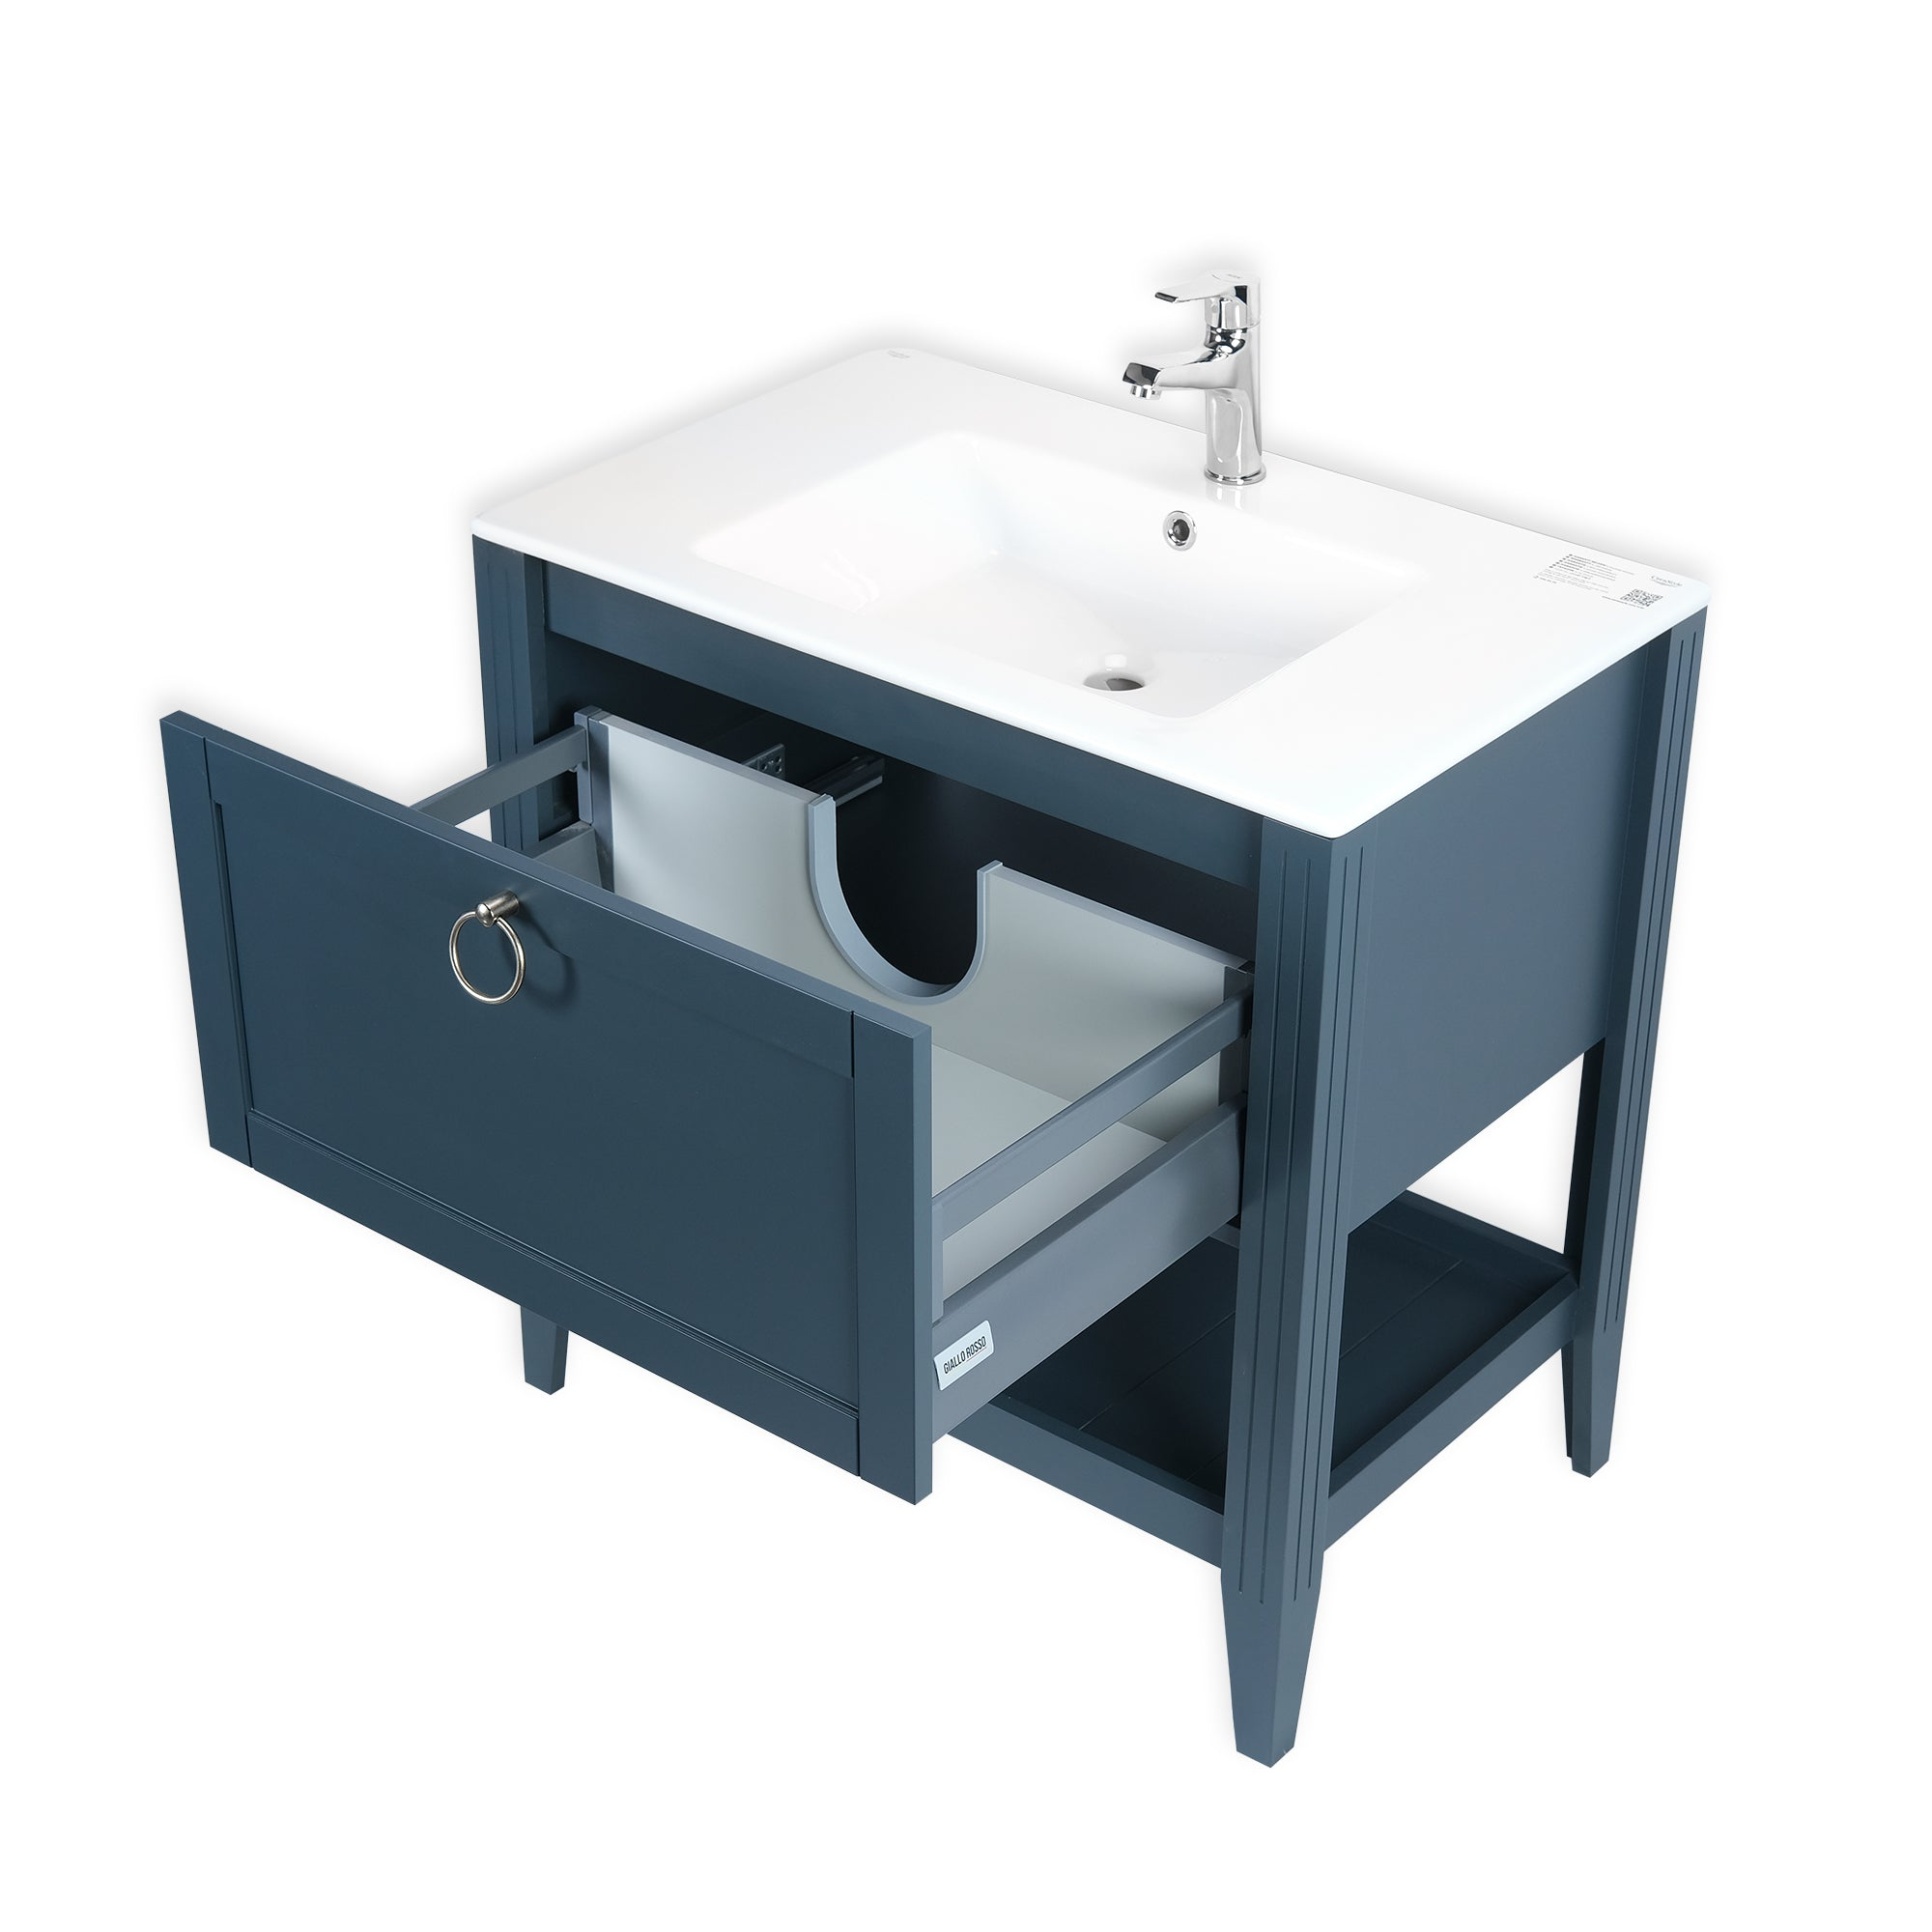 SOFIA 32INCH FREE STANDING VANITY AND SINK COMBO WITH MATCHING MIRROR - CHARCOAL GRAY